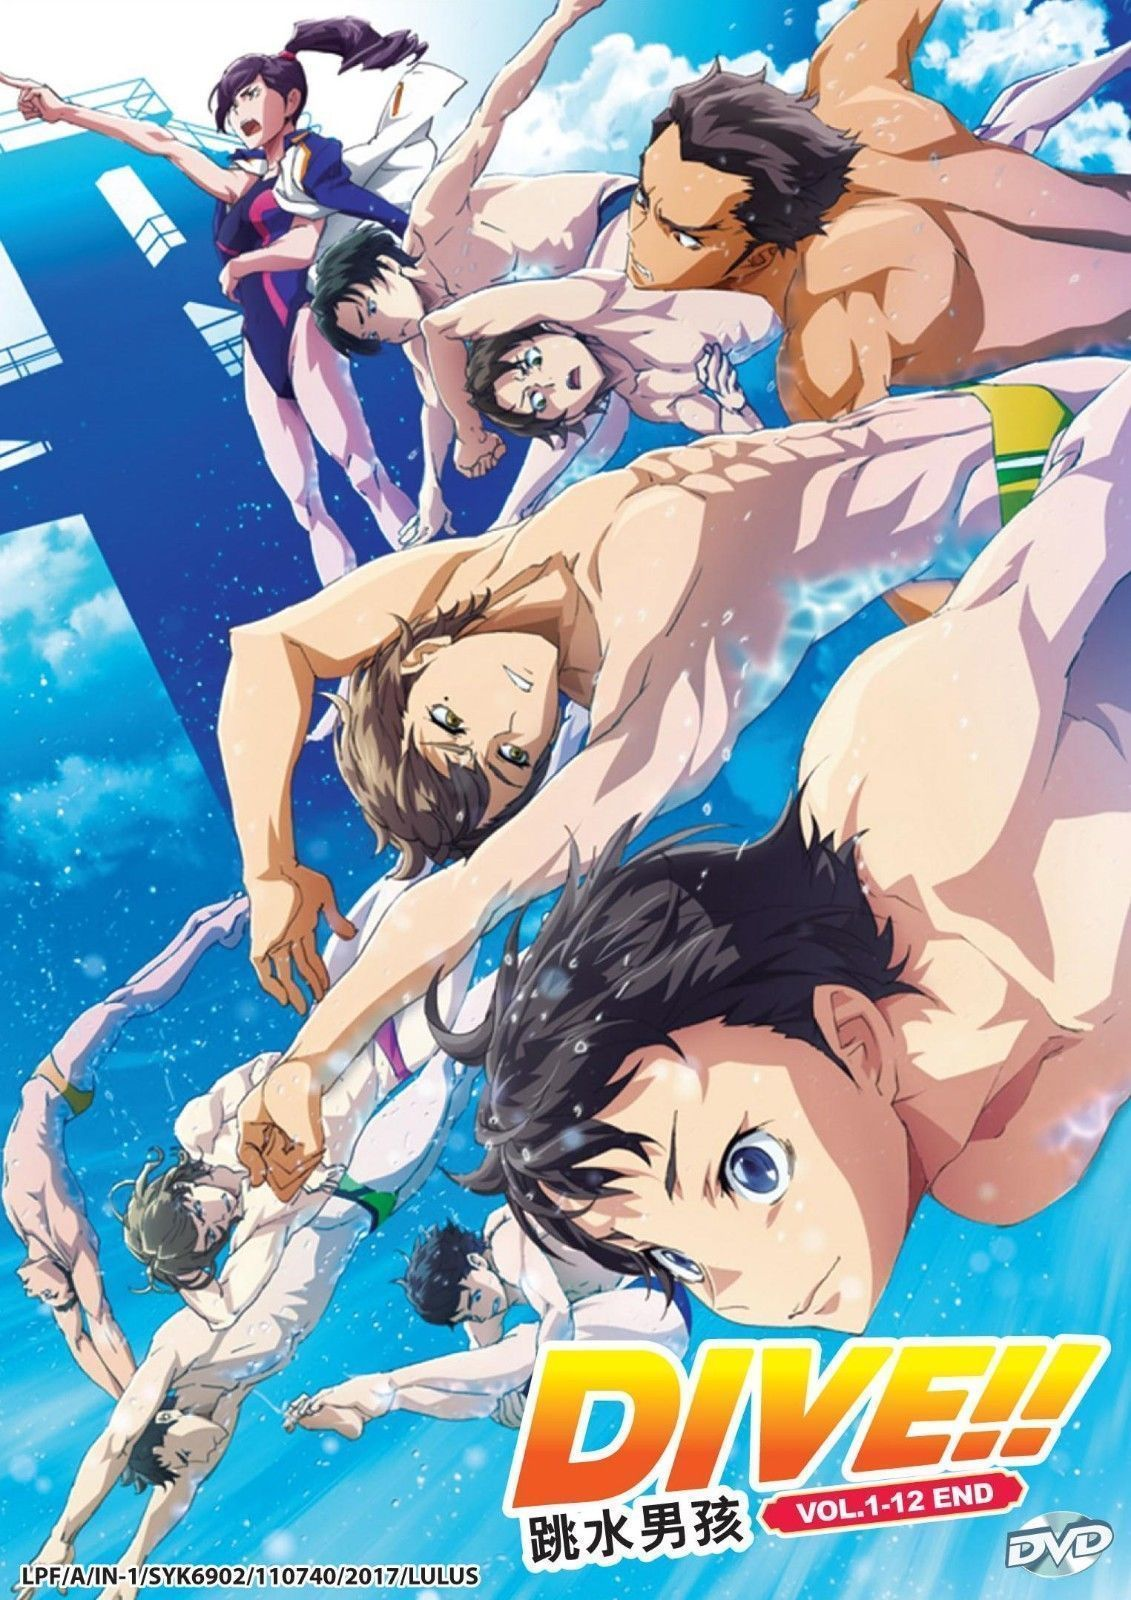 DIVE !! Vol. 1-12 End English Subtitles DVD SHIP FROM USA